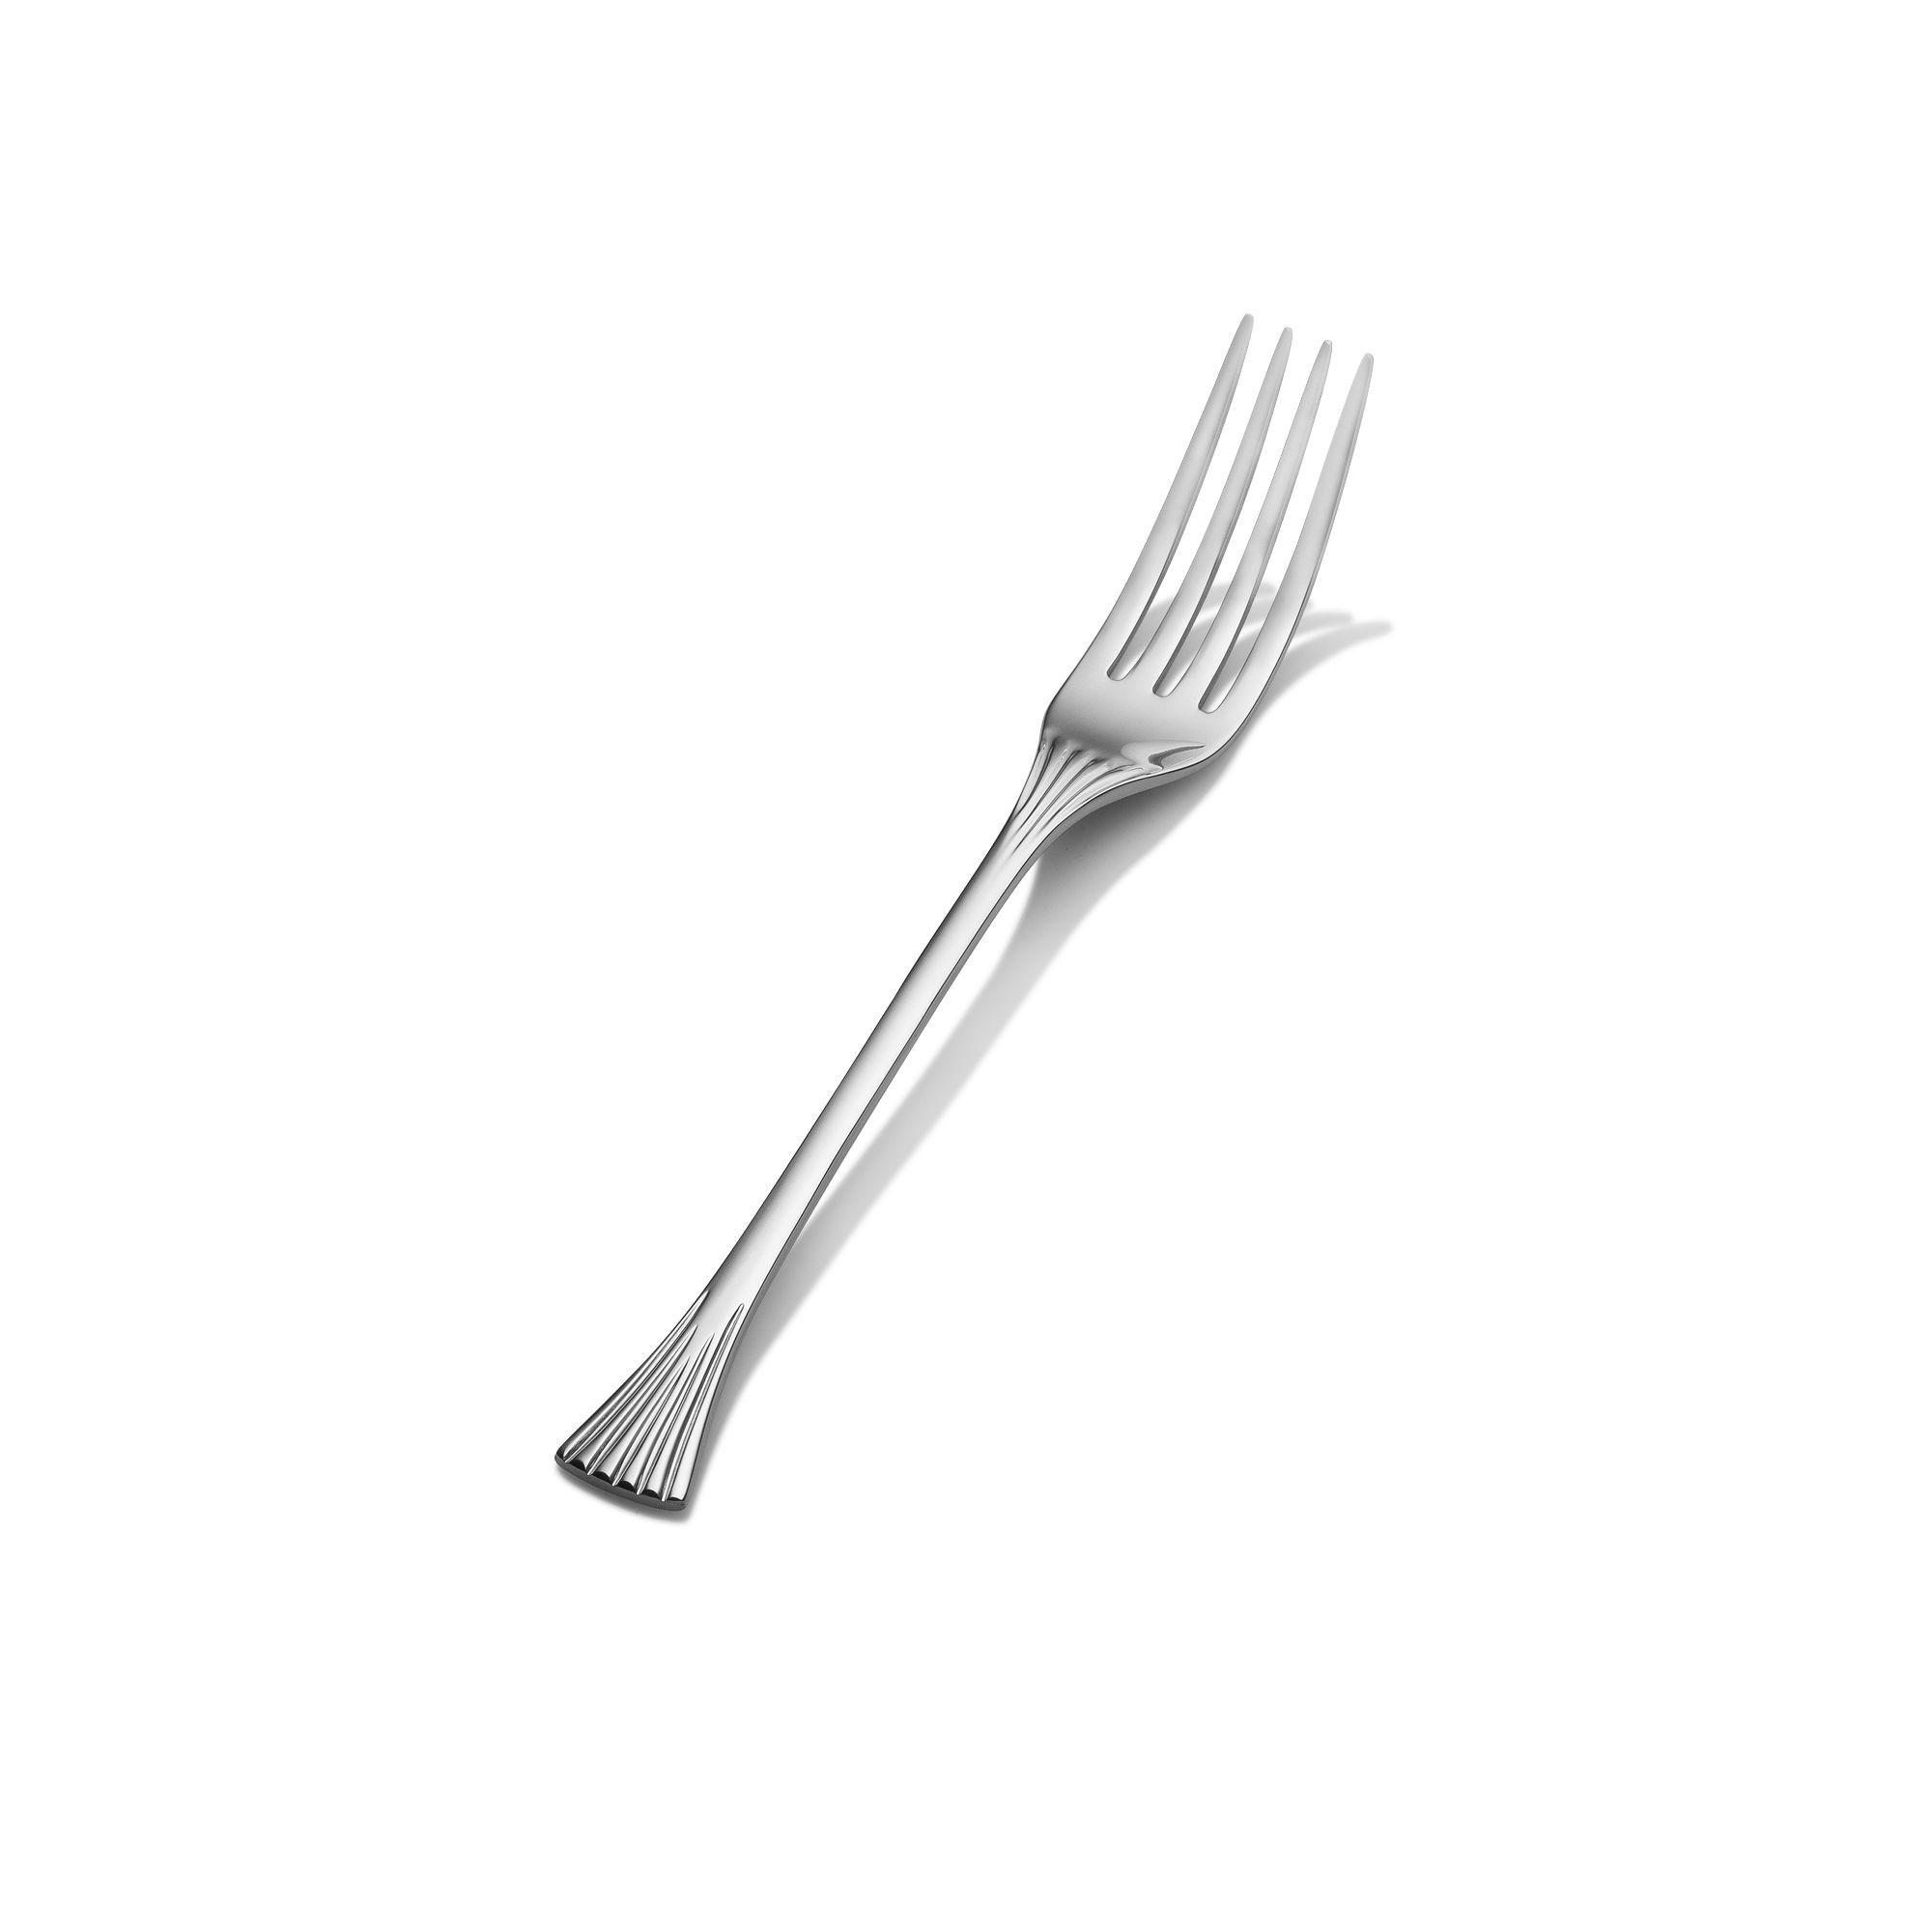 Bon Chef S2805S Mimosa 18/8 Stainless Steel Silverplated Regular Dinner Fork